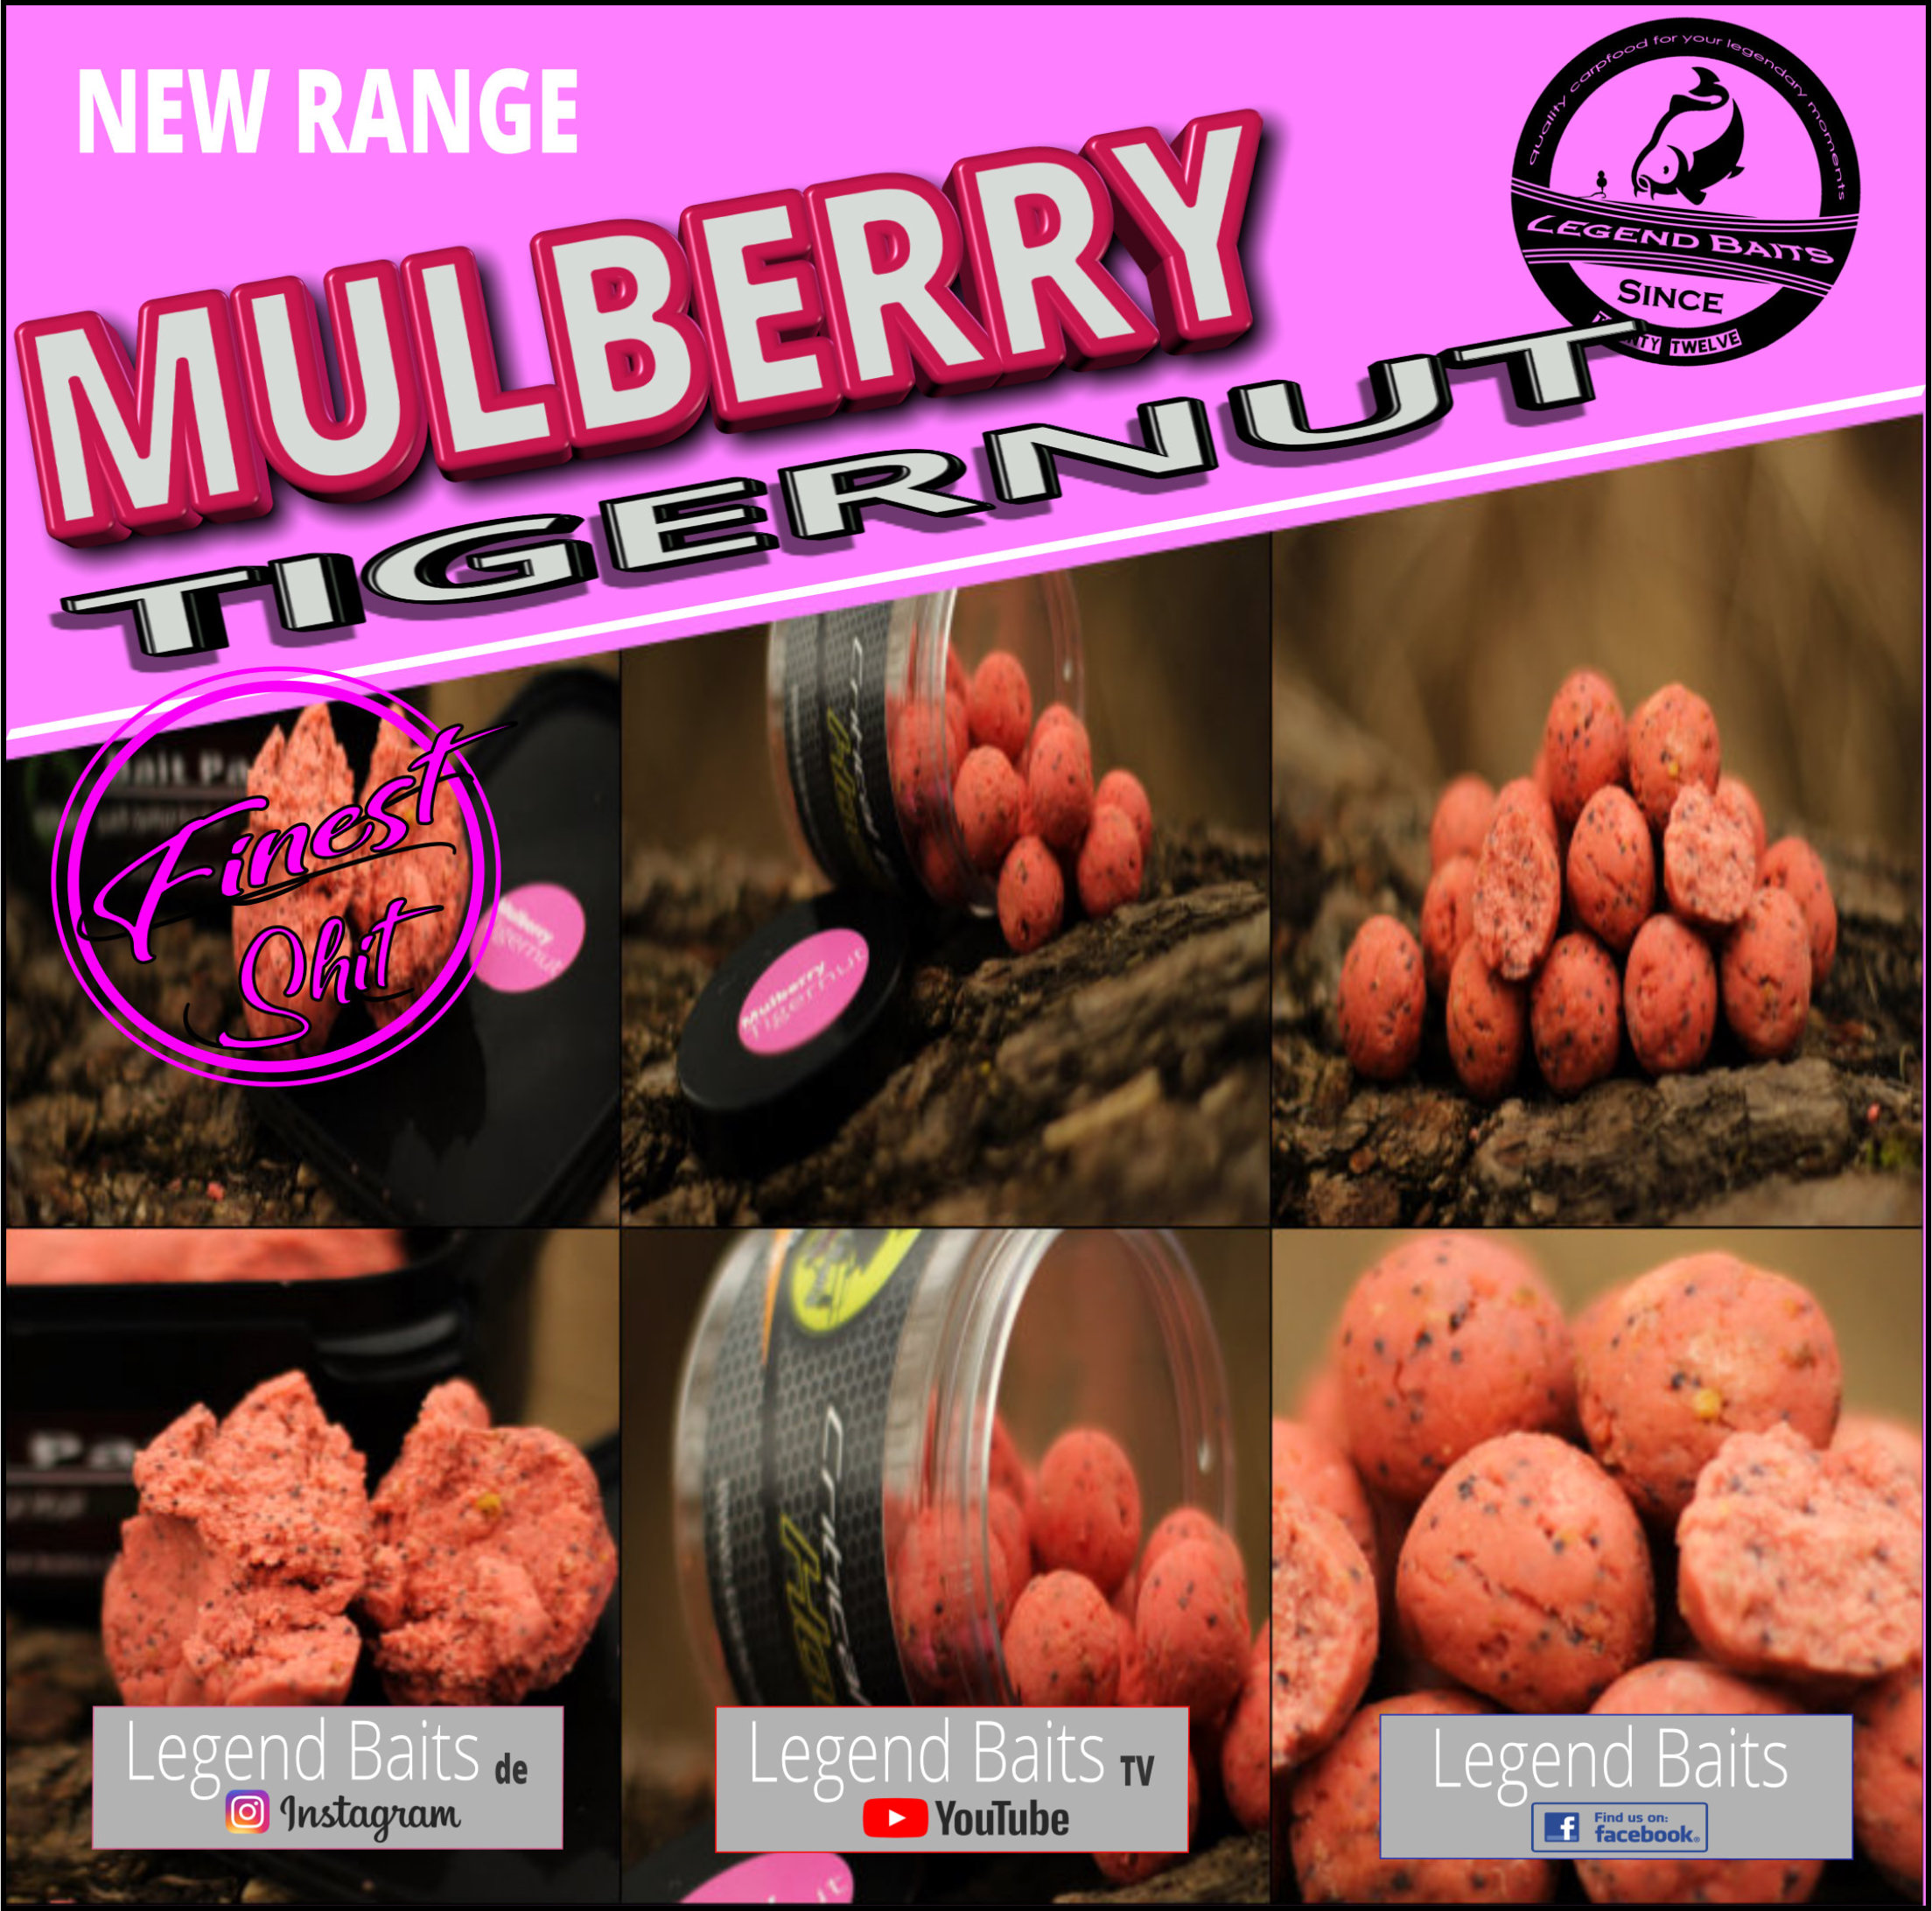 Anzeige Mulberry Tigernut - The most wanted